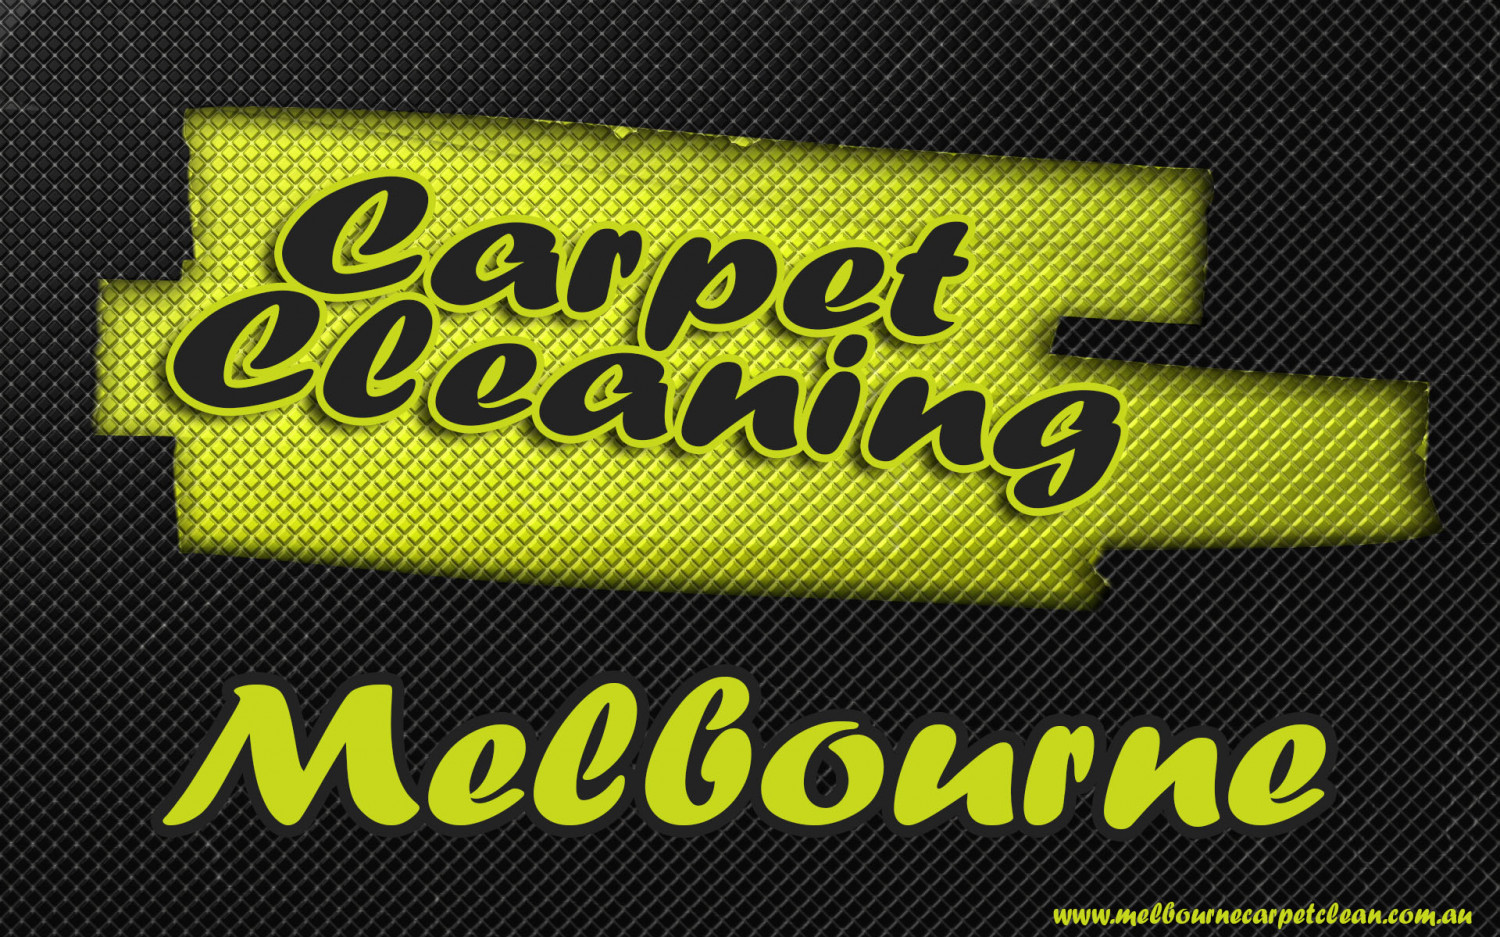 Carpet Cleaning Melbourne Infographic